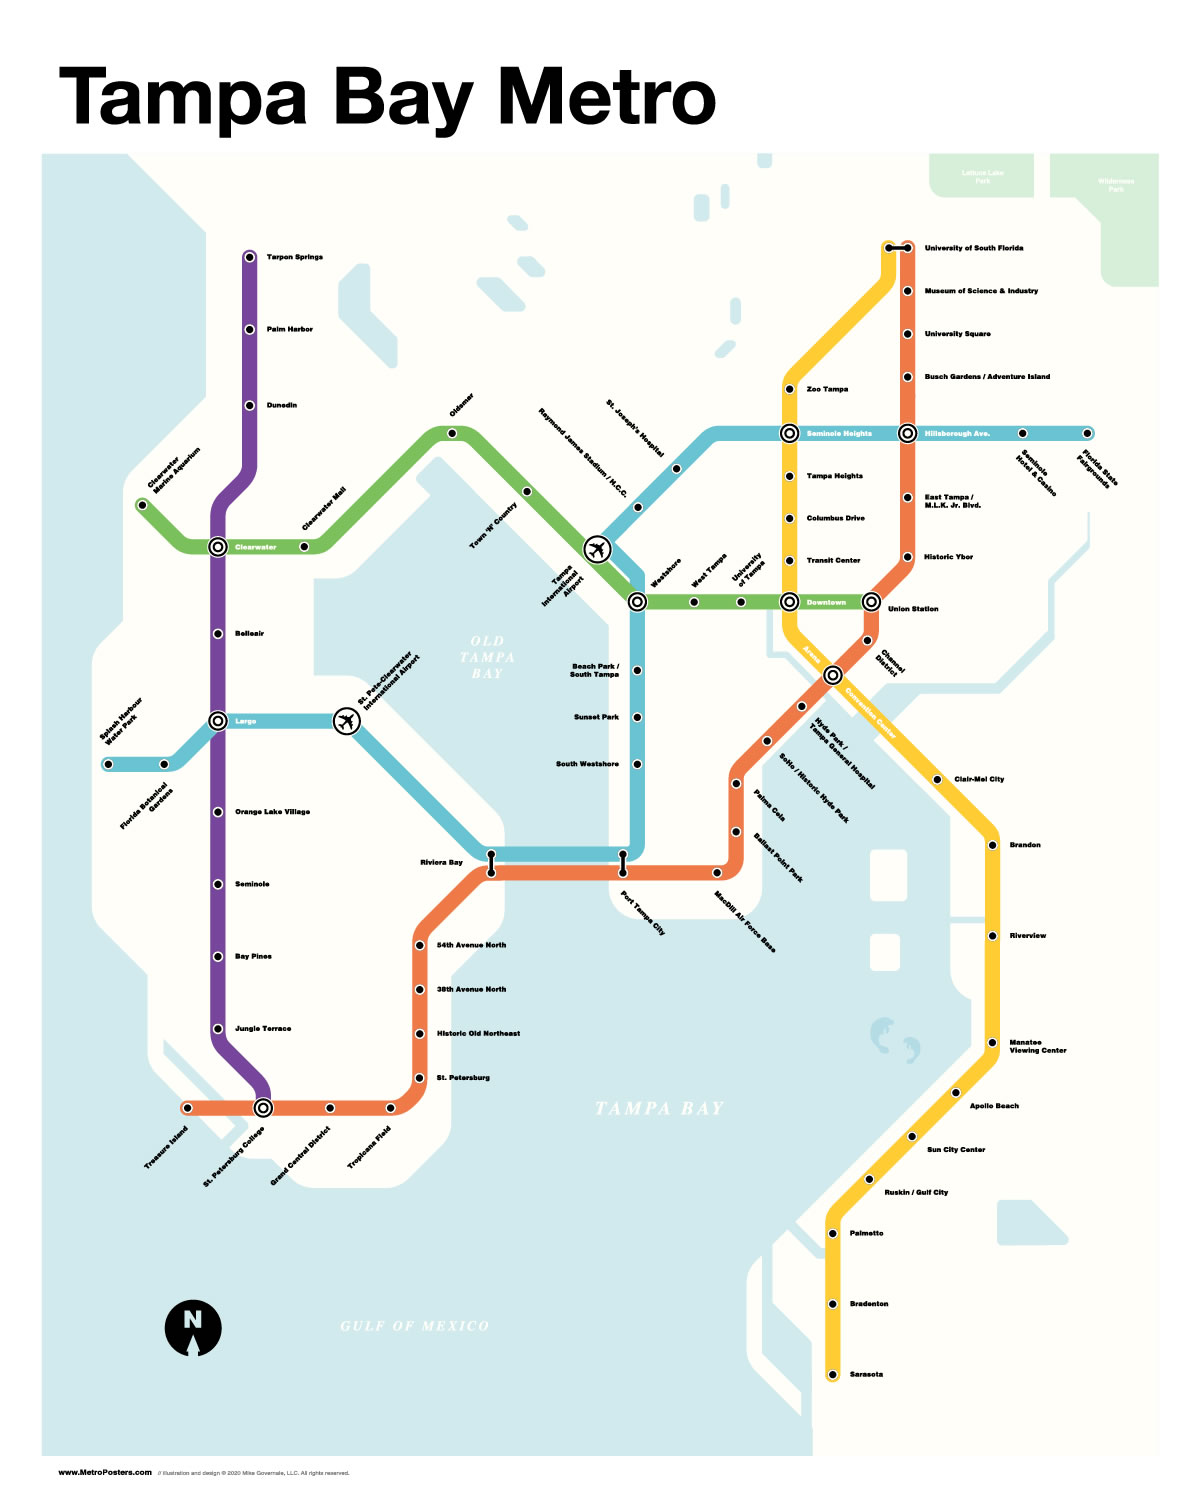 'Tampa Bay Metro': A map of a hypothetical metro system for Tampa Bay, done in the style of New York's Metro map.